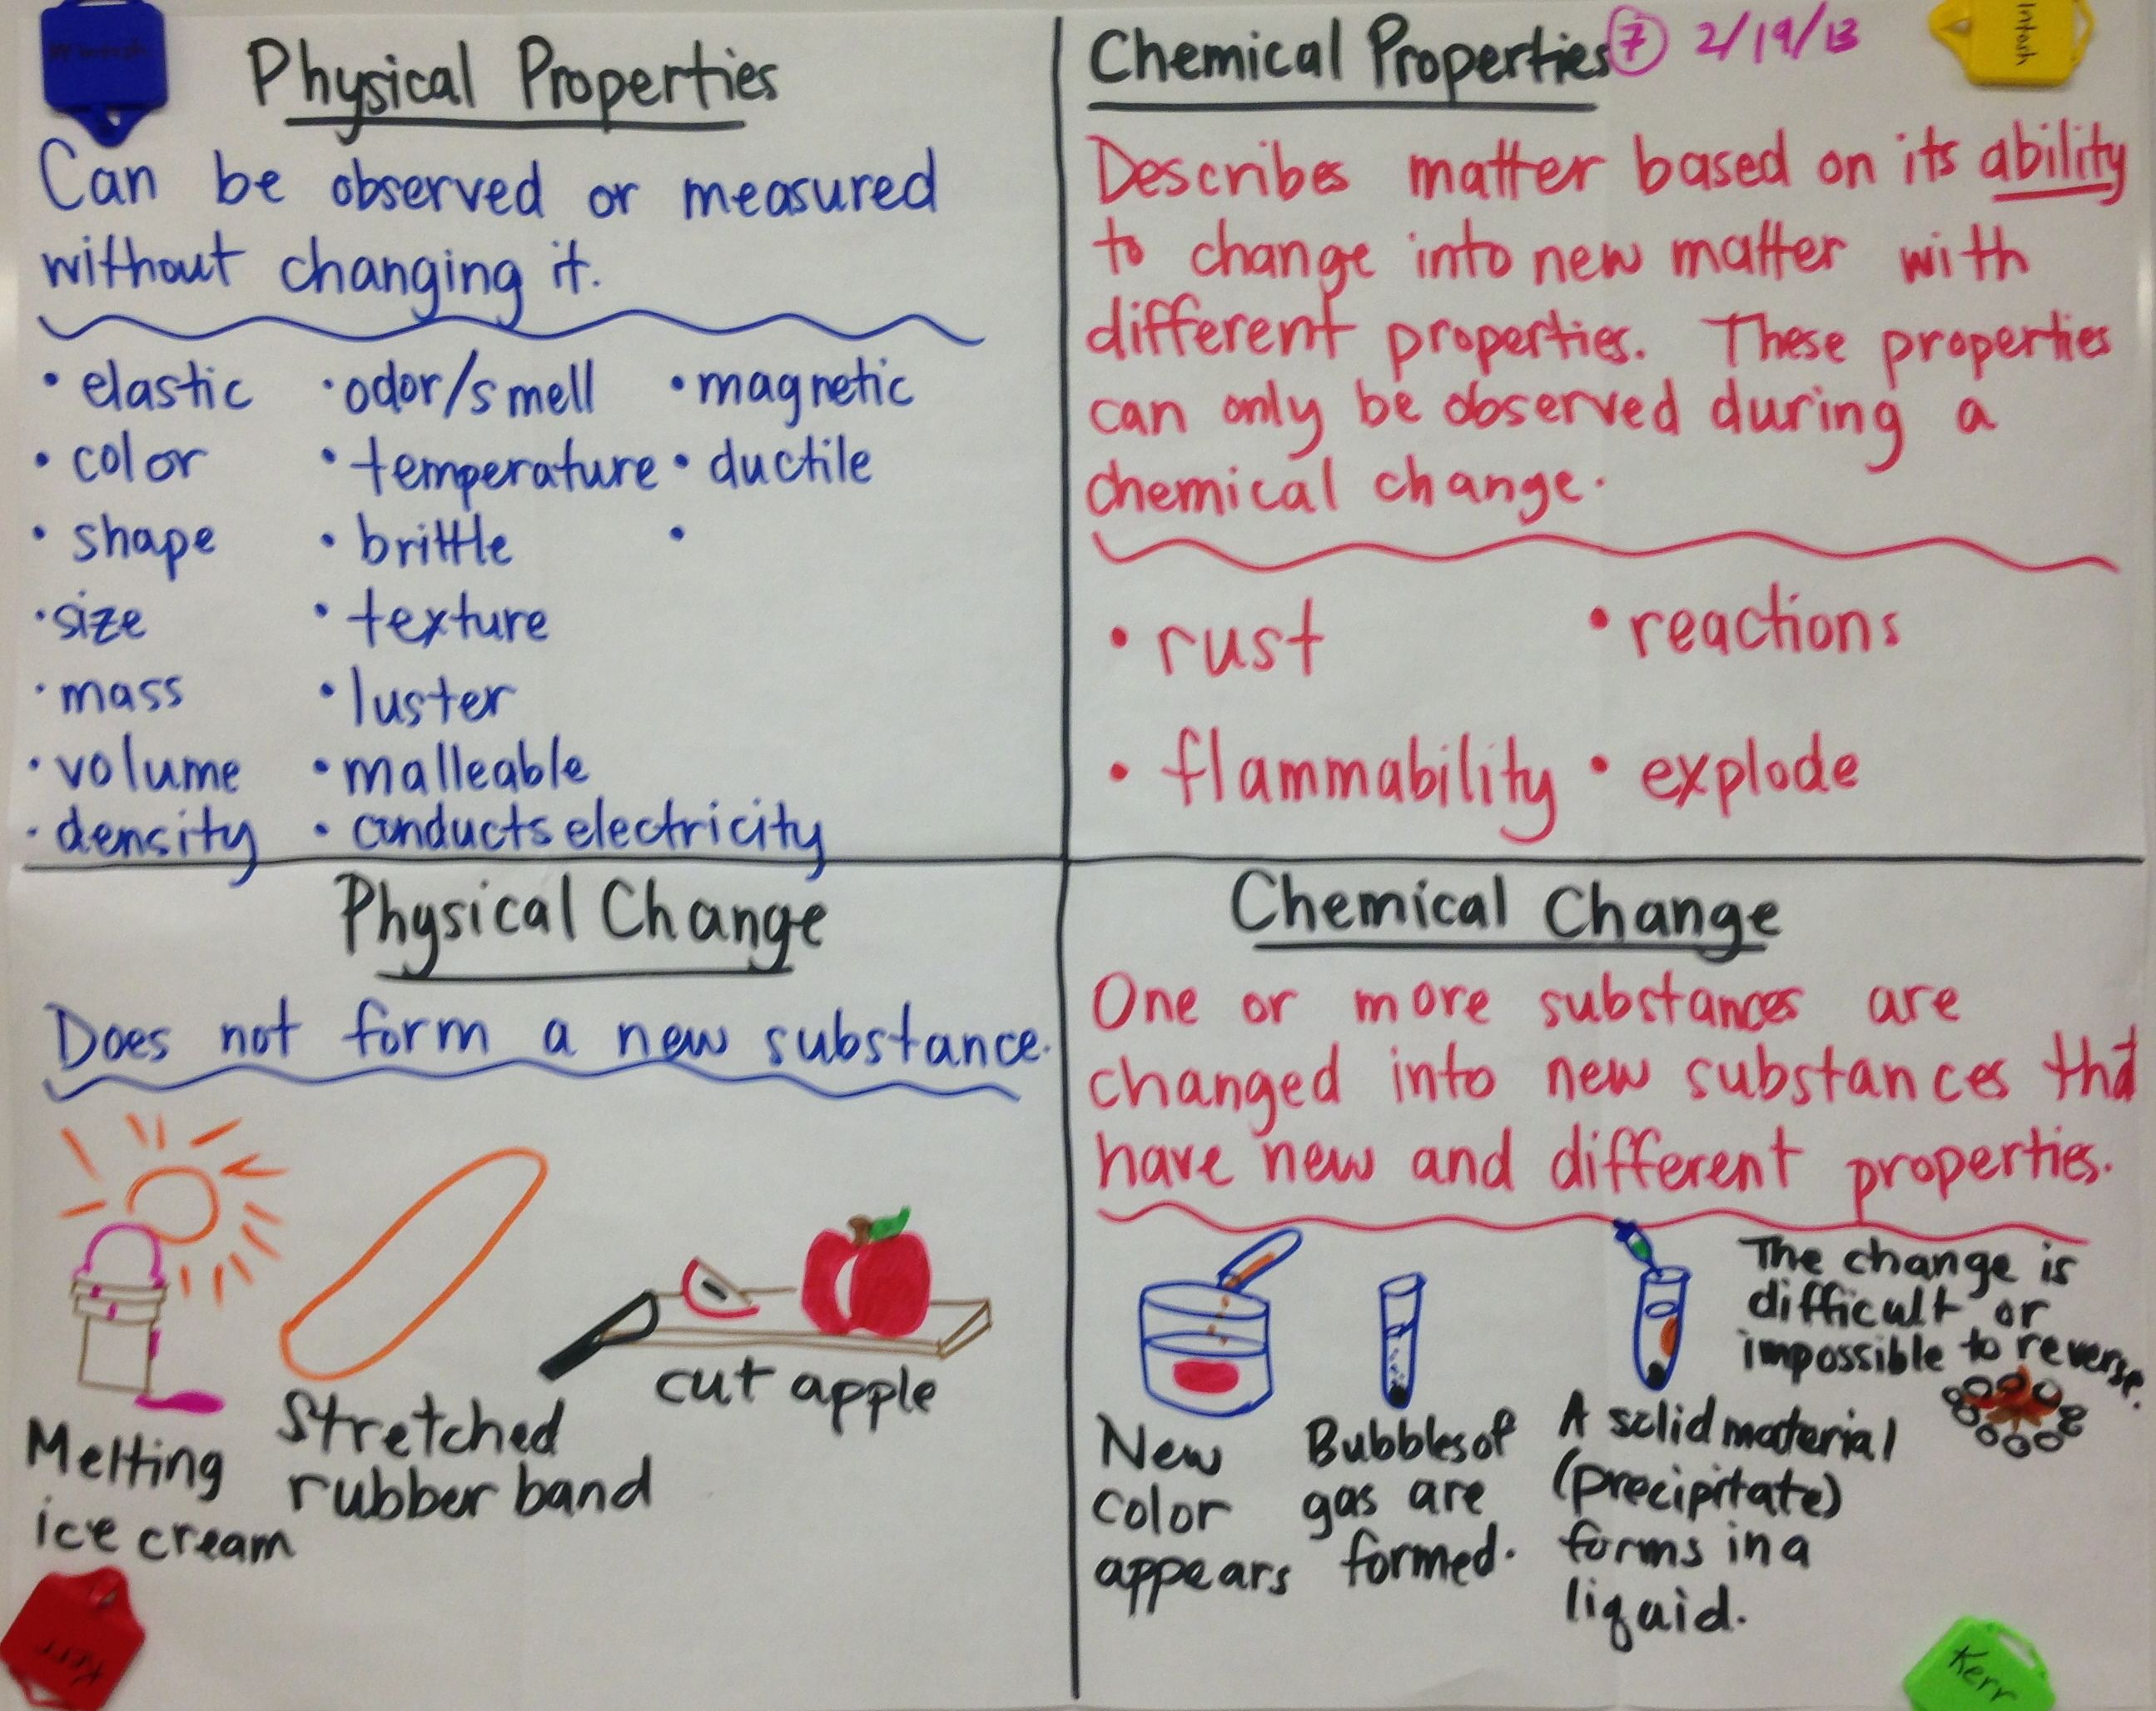 Organizing Matter By Physical Properties Activity